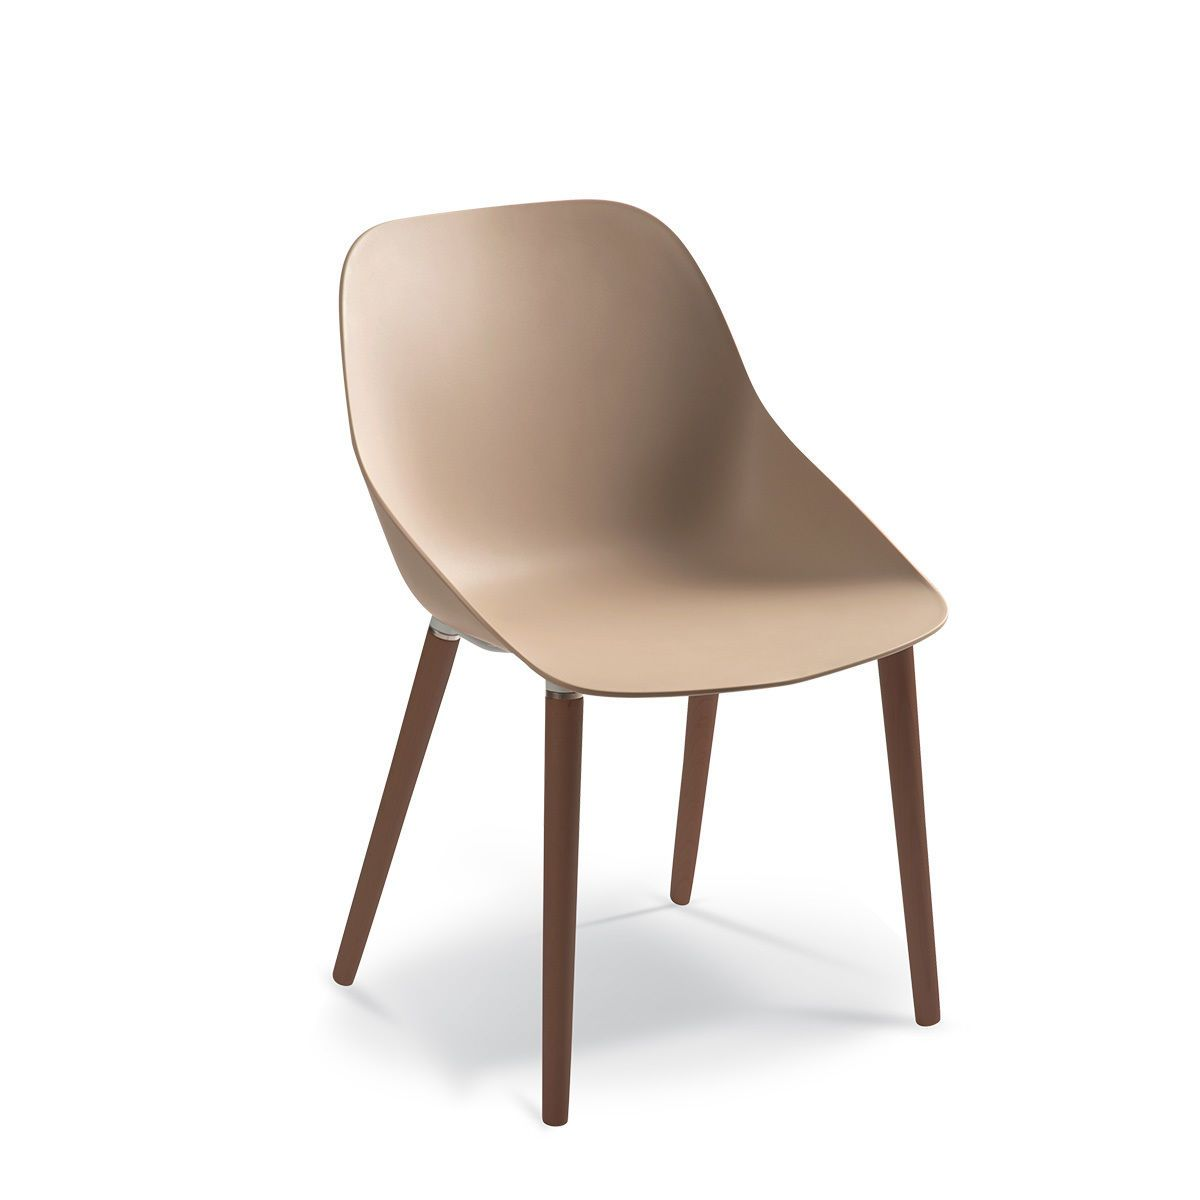 UOVO CHAIR